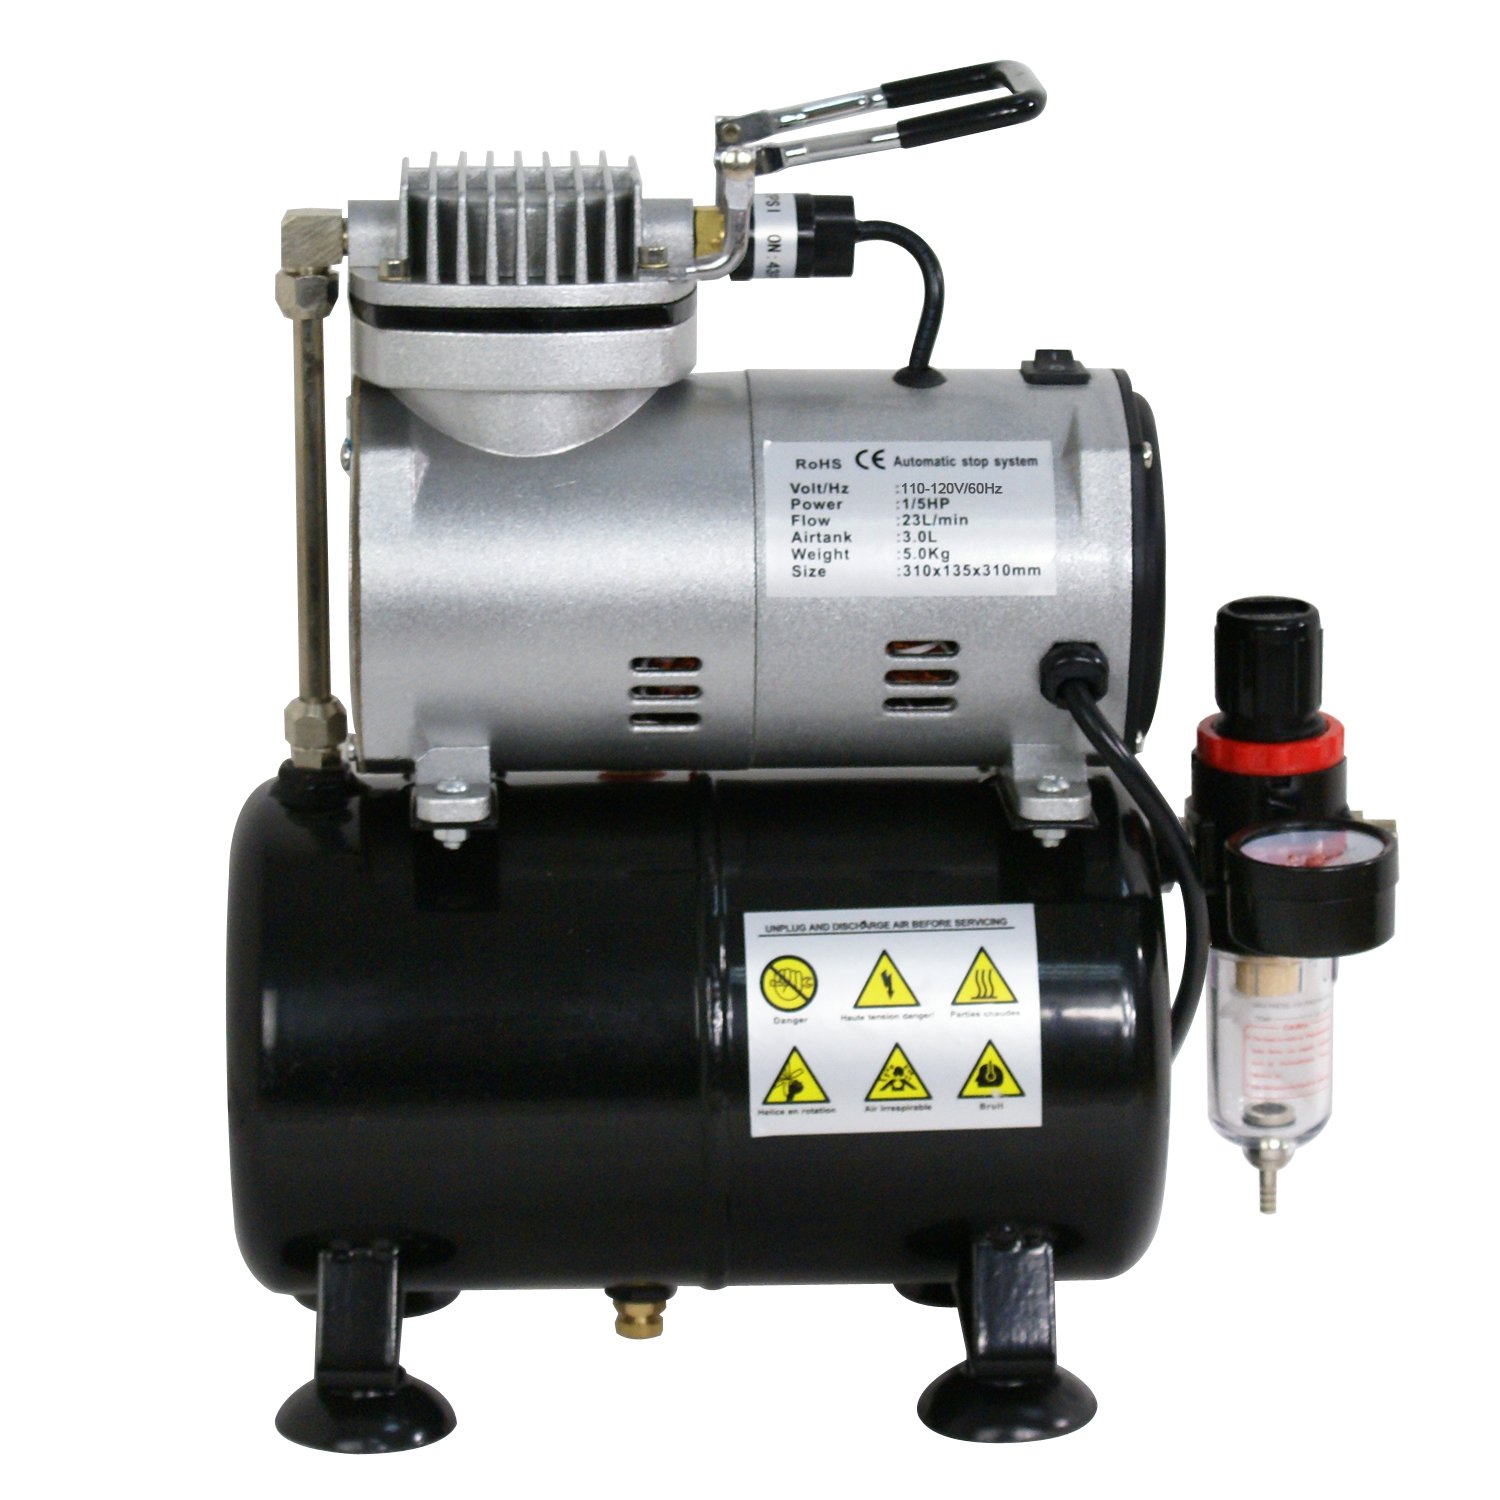 ZENY Pro 1//5 HP Airbrush Air Compressor Kit w// 3L Tank /& 6FT Hose Multipurpose for Hobby Paint Cake Tattoo